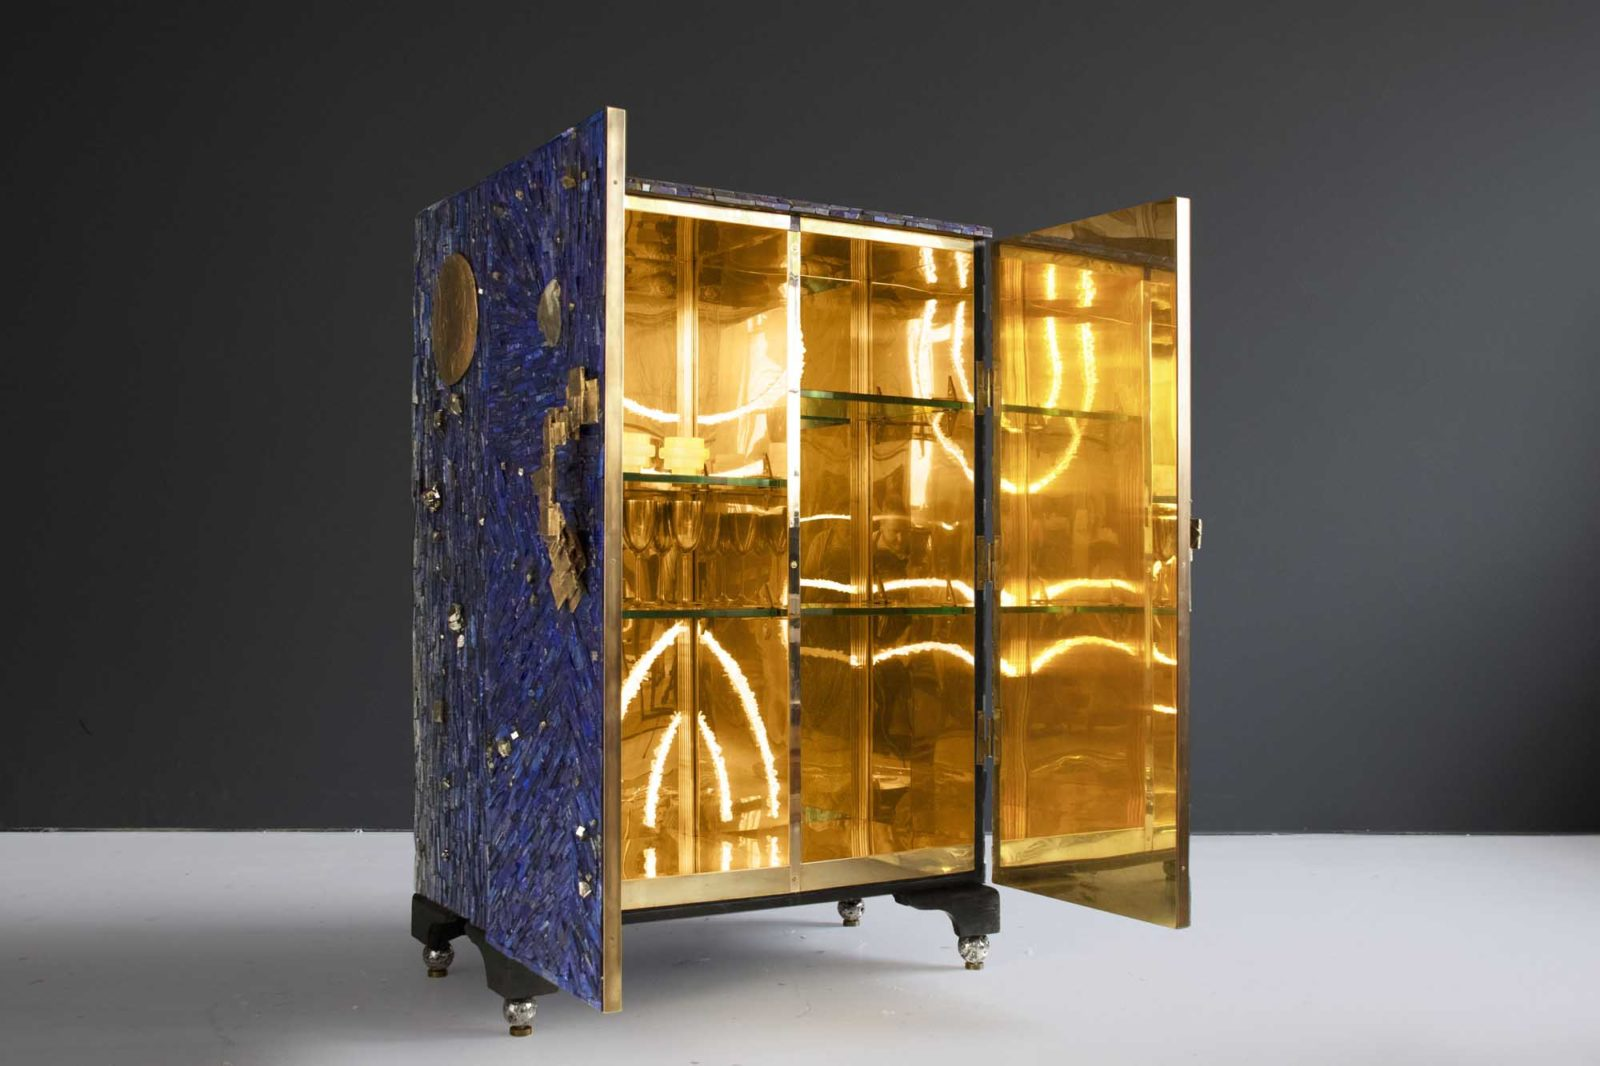 'Curiosity Cabinet' interior is solid brass with quartz crystal lighting